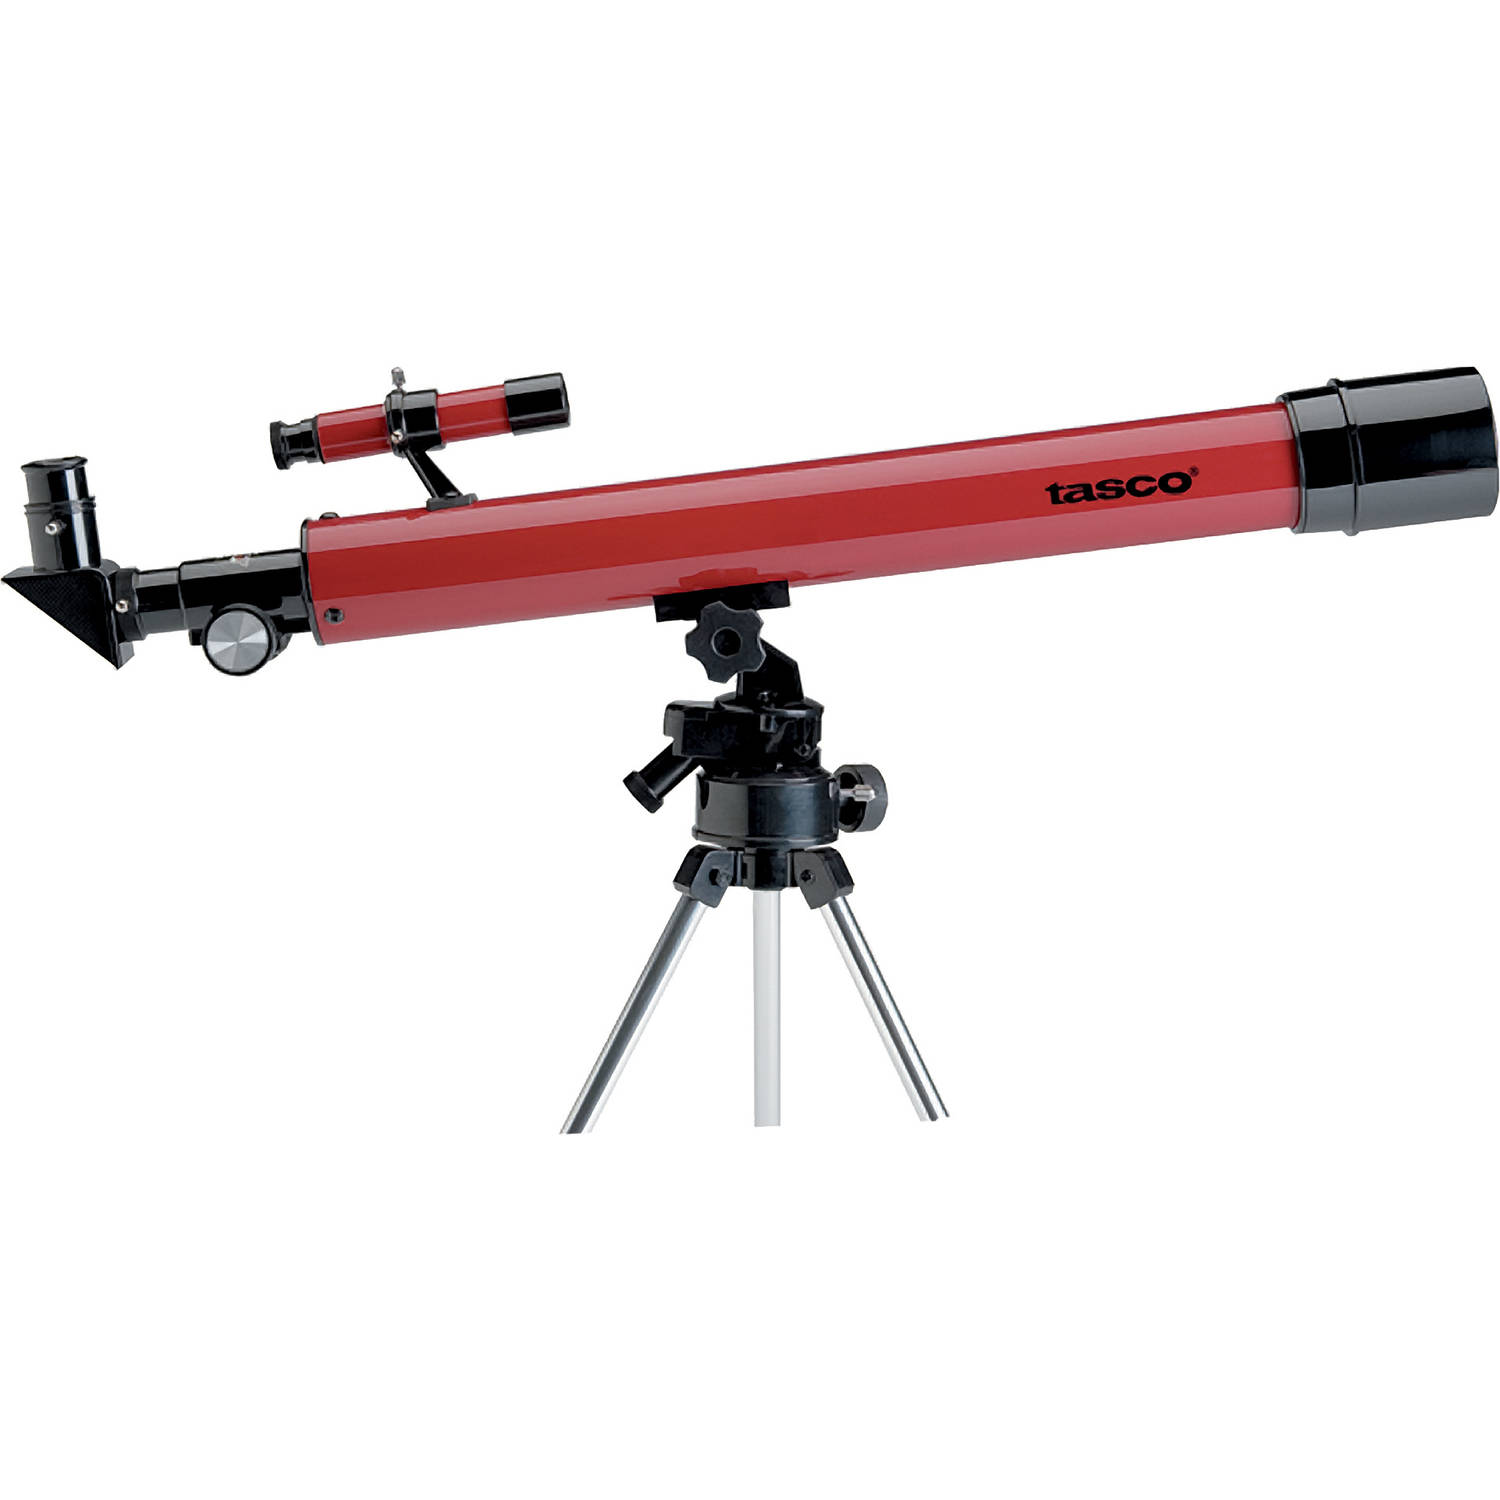 Tasco 50x50mm Lens Refractor Altazimuth Telescope, Red by Generic